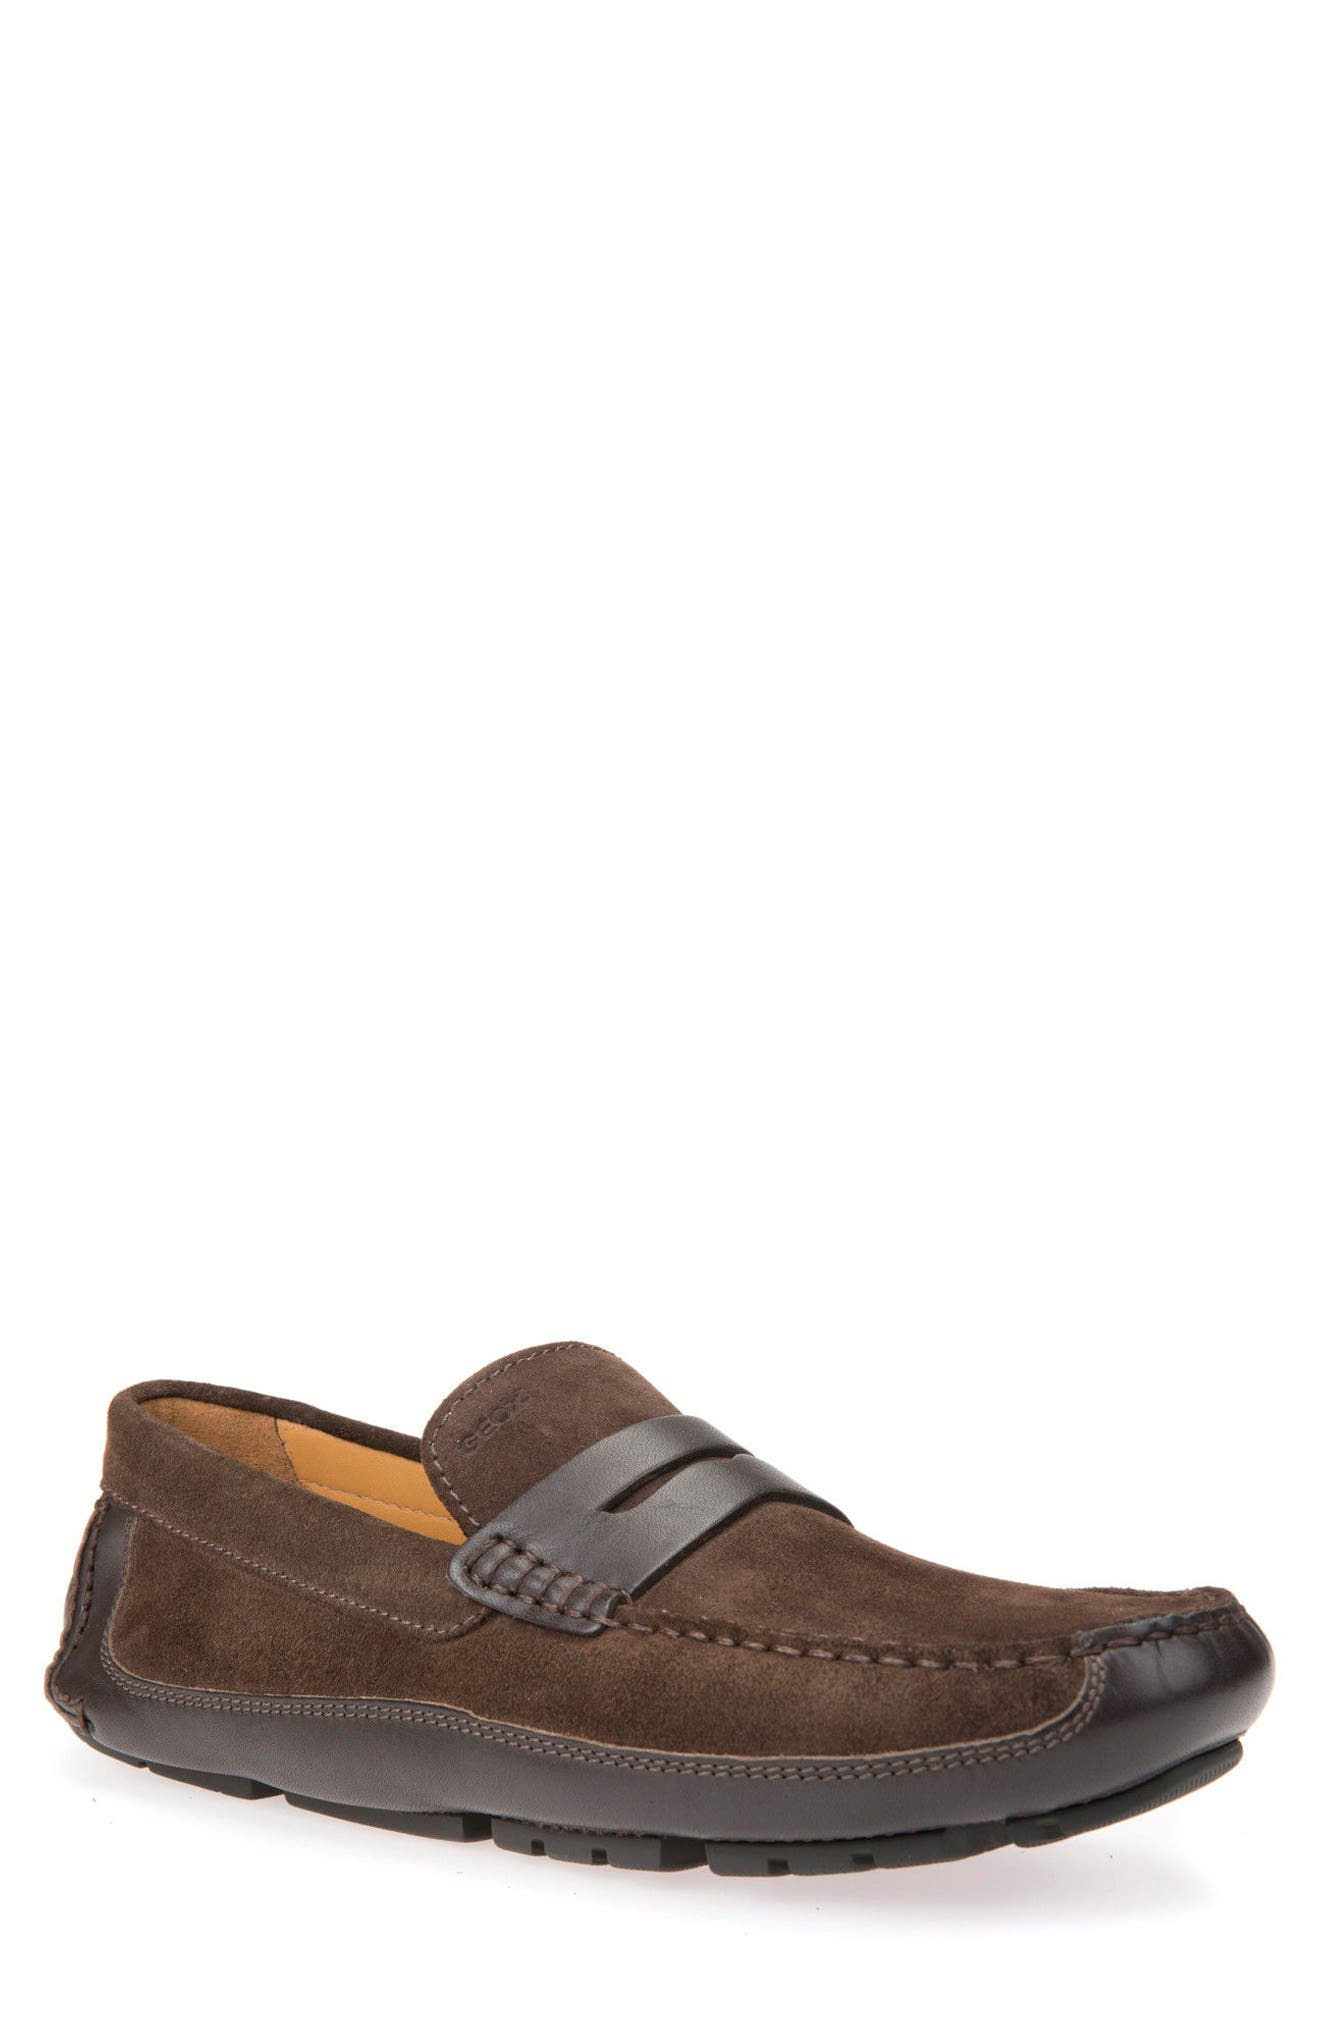 Melbourne 4 Driving Loafer,                             Main thumbnail 1, color,                             204